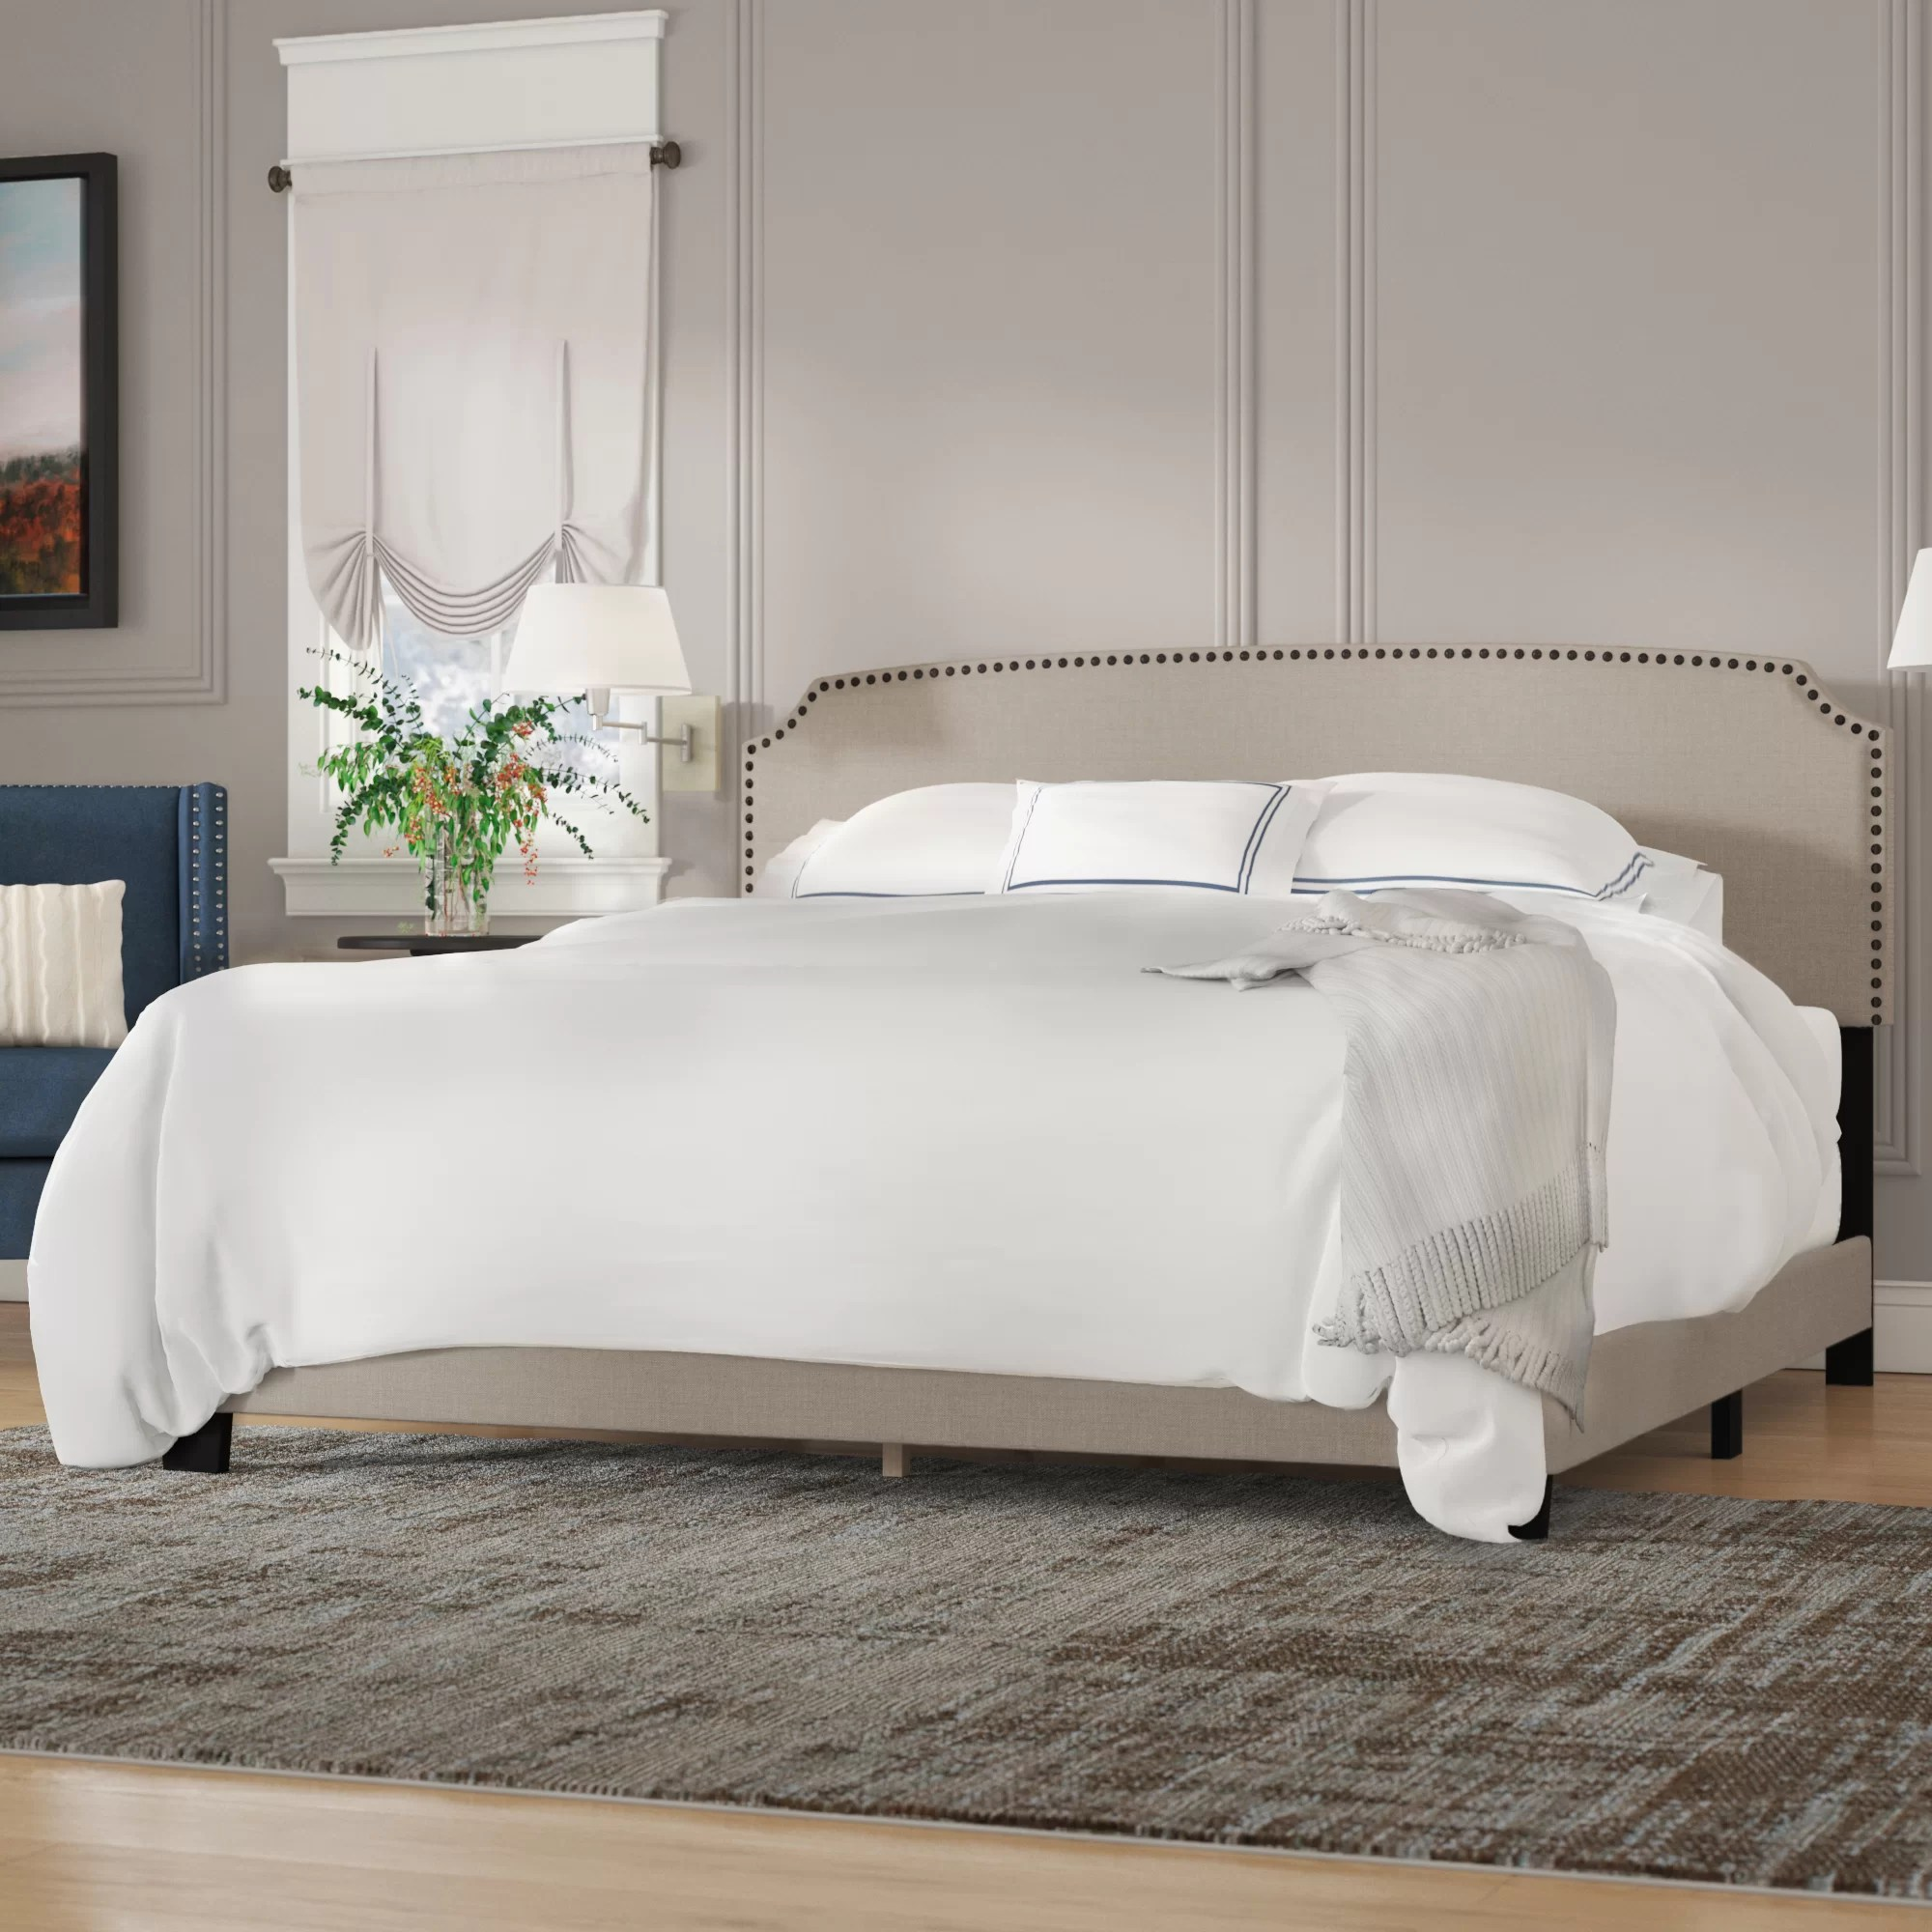 Kettler Kids Comfort Kettler Upholstered Panel Bed